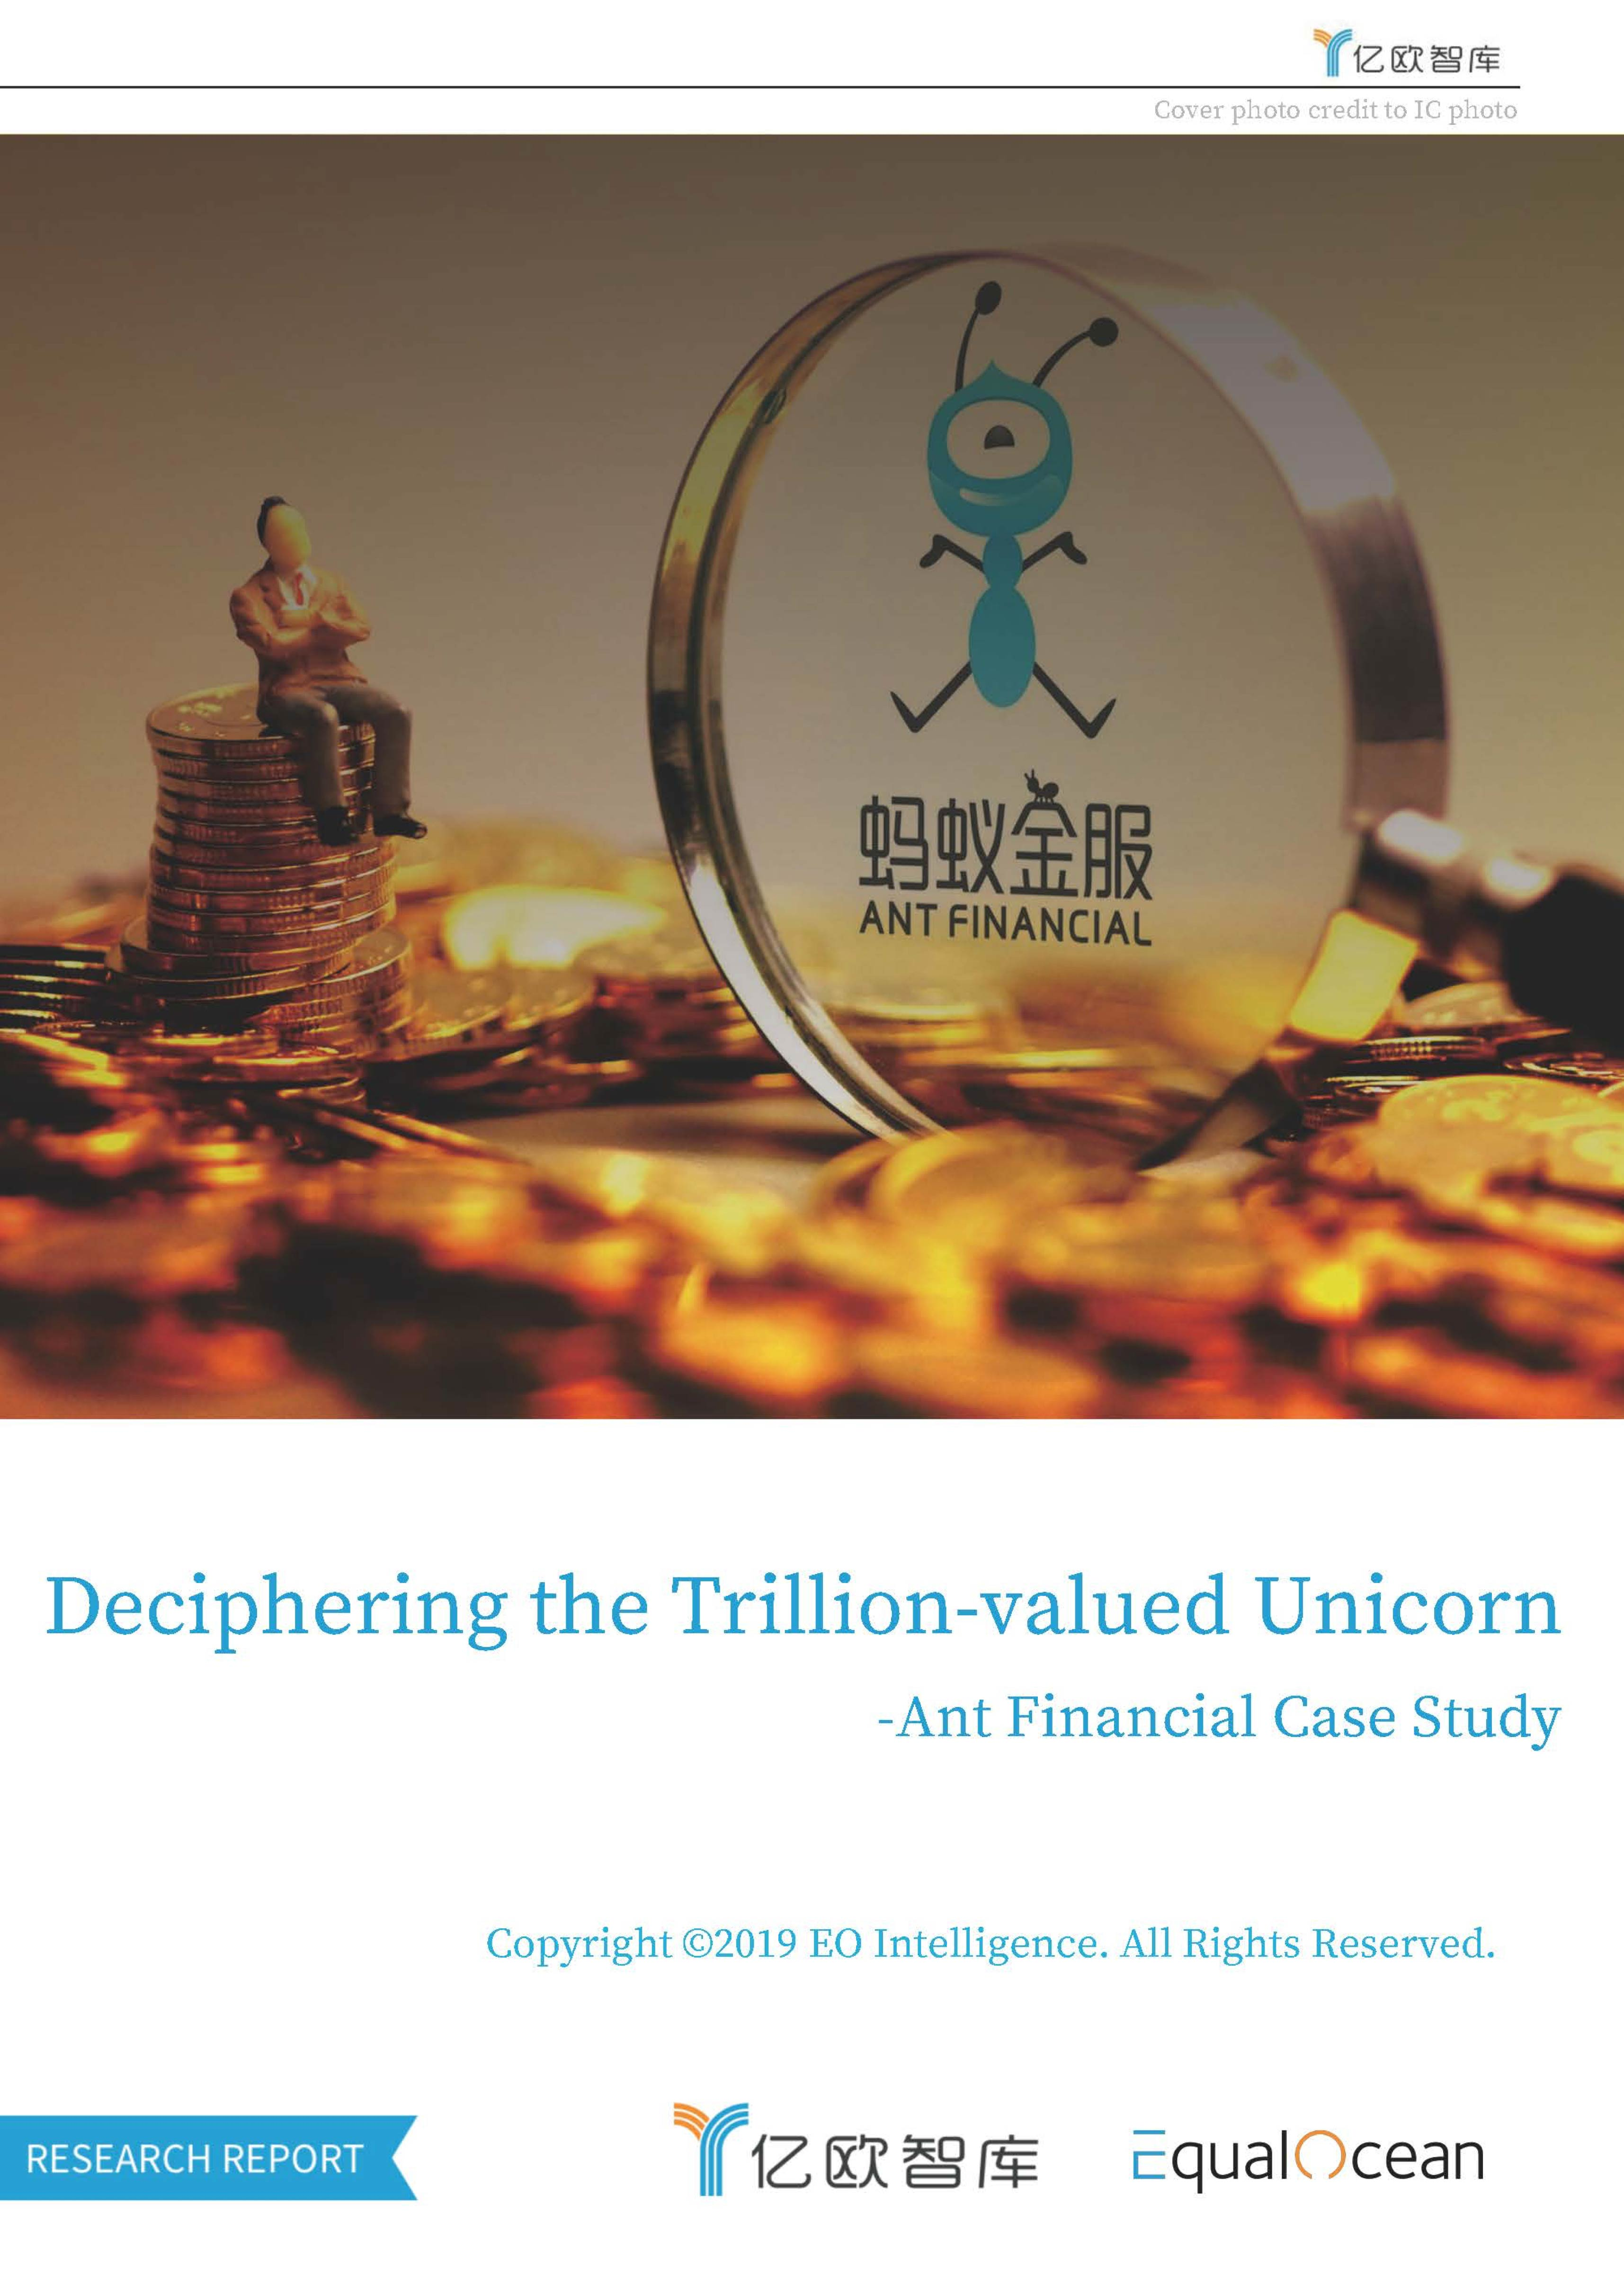 EO Intelligence Report -- Ant Financial Case Study